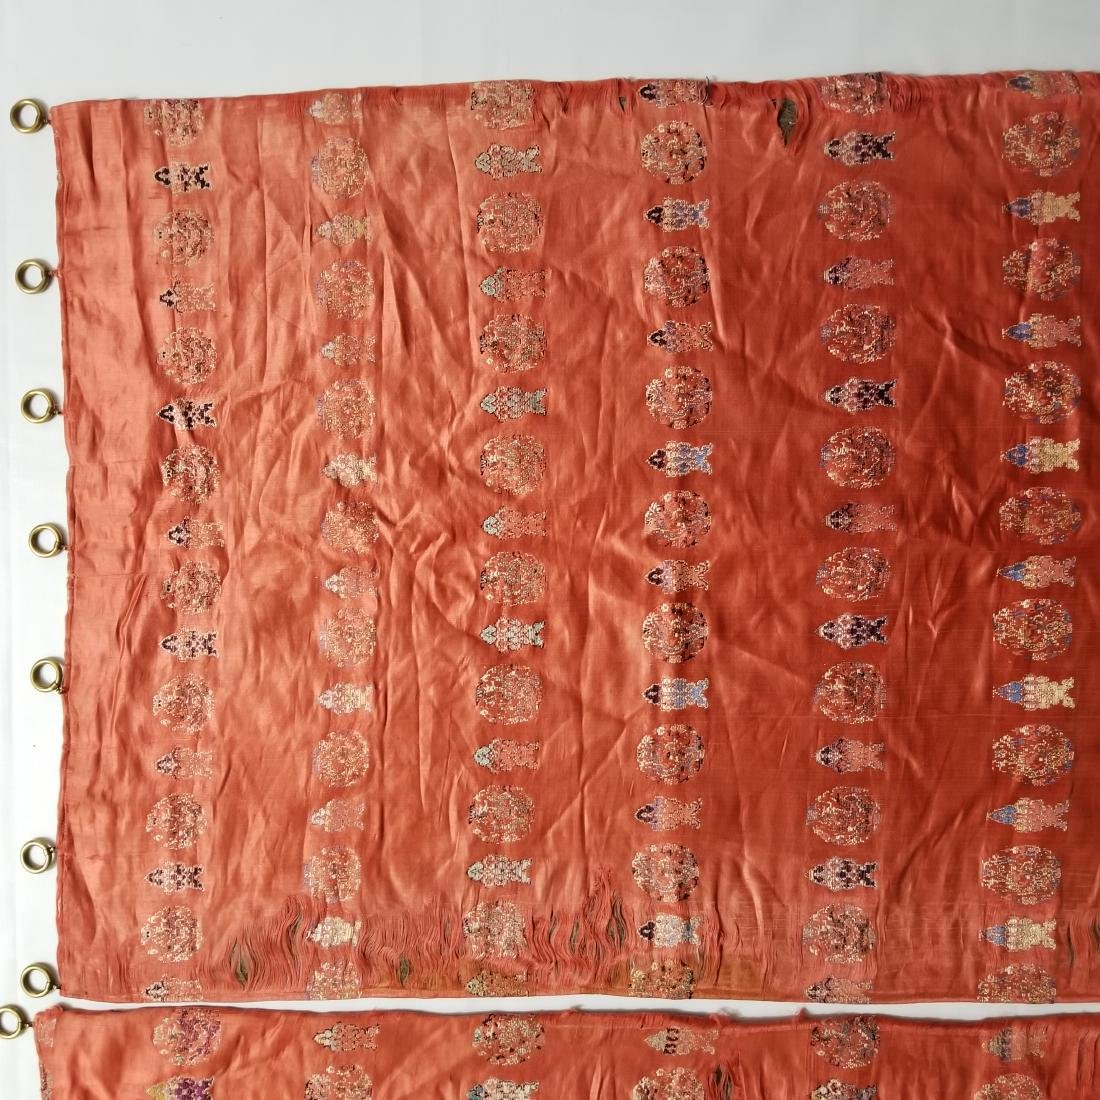 Pair of Antique Chinese/Tibetan Brocade Curtains - 3